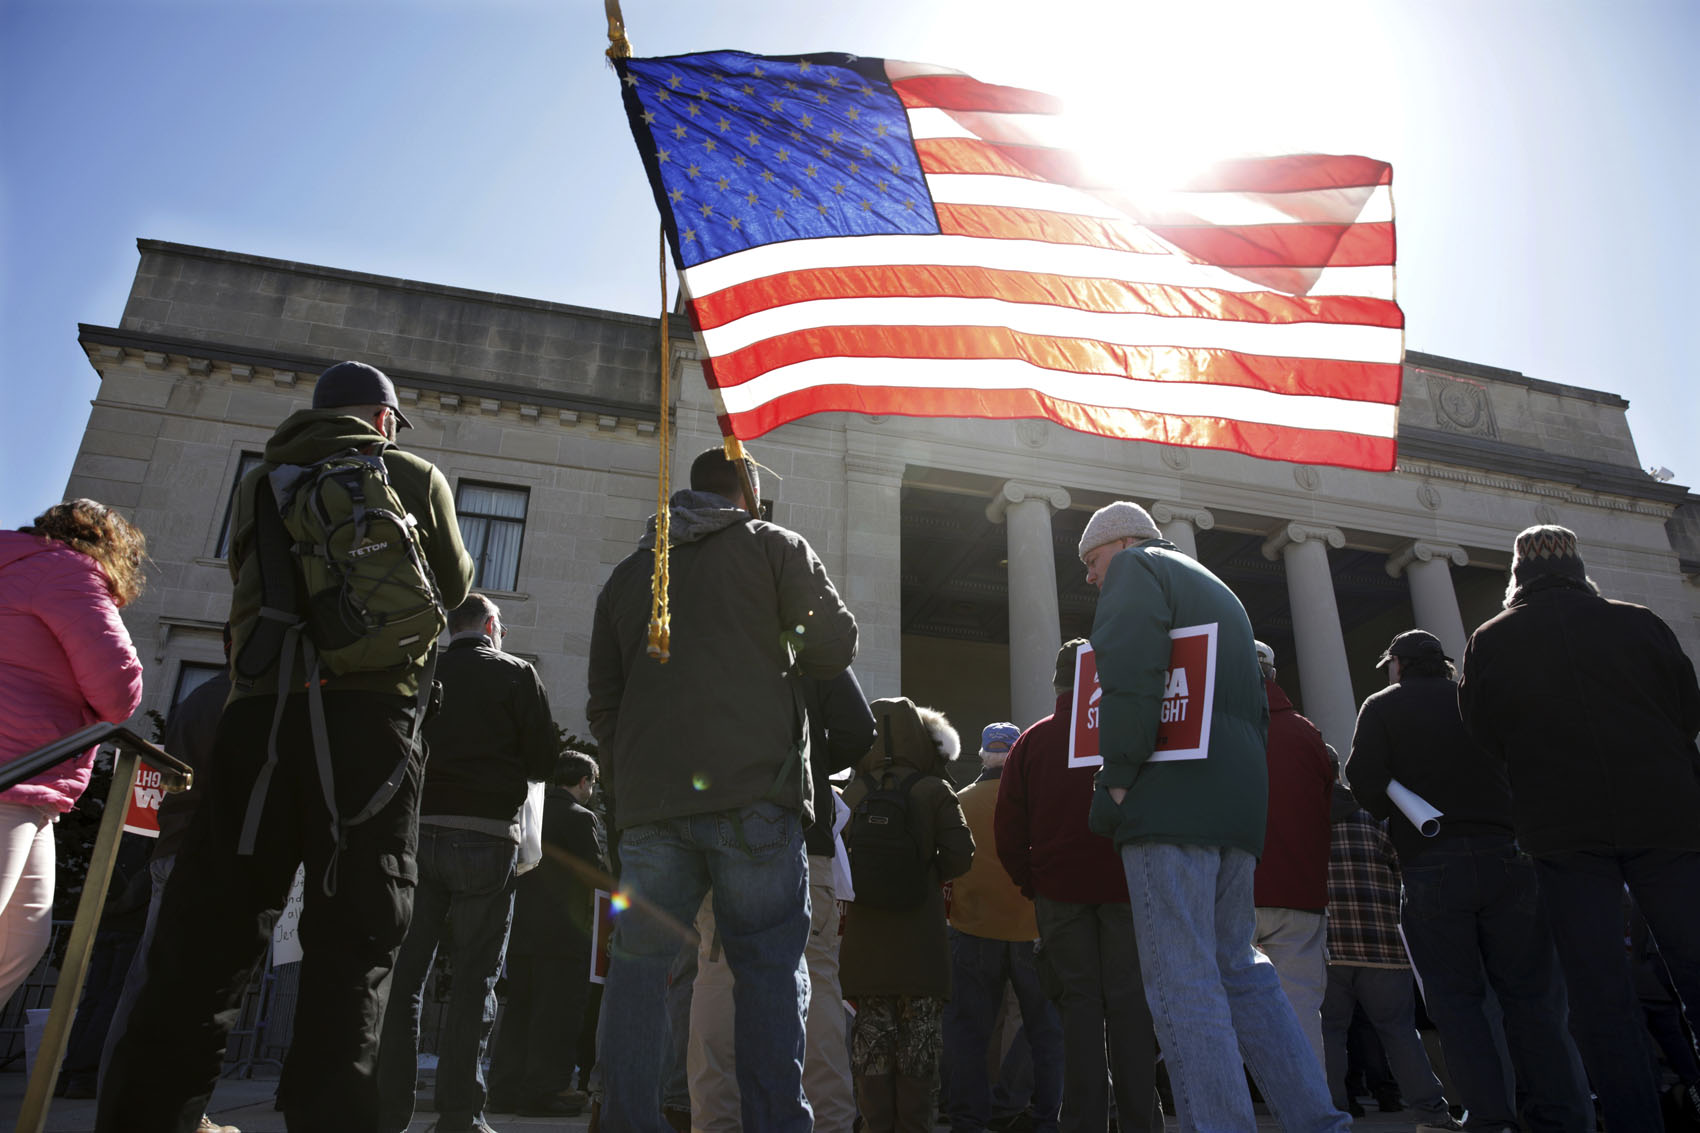 A group of Second Amendment advocates gather in opposition to about a half-dozen gun control bills on Monday, March 26, 2018, outside the War Memorial near the Statehouse in Trenton, N.J. (Mel Evans/AP)